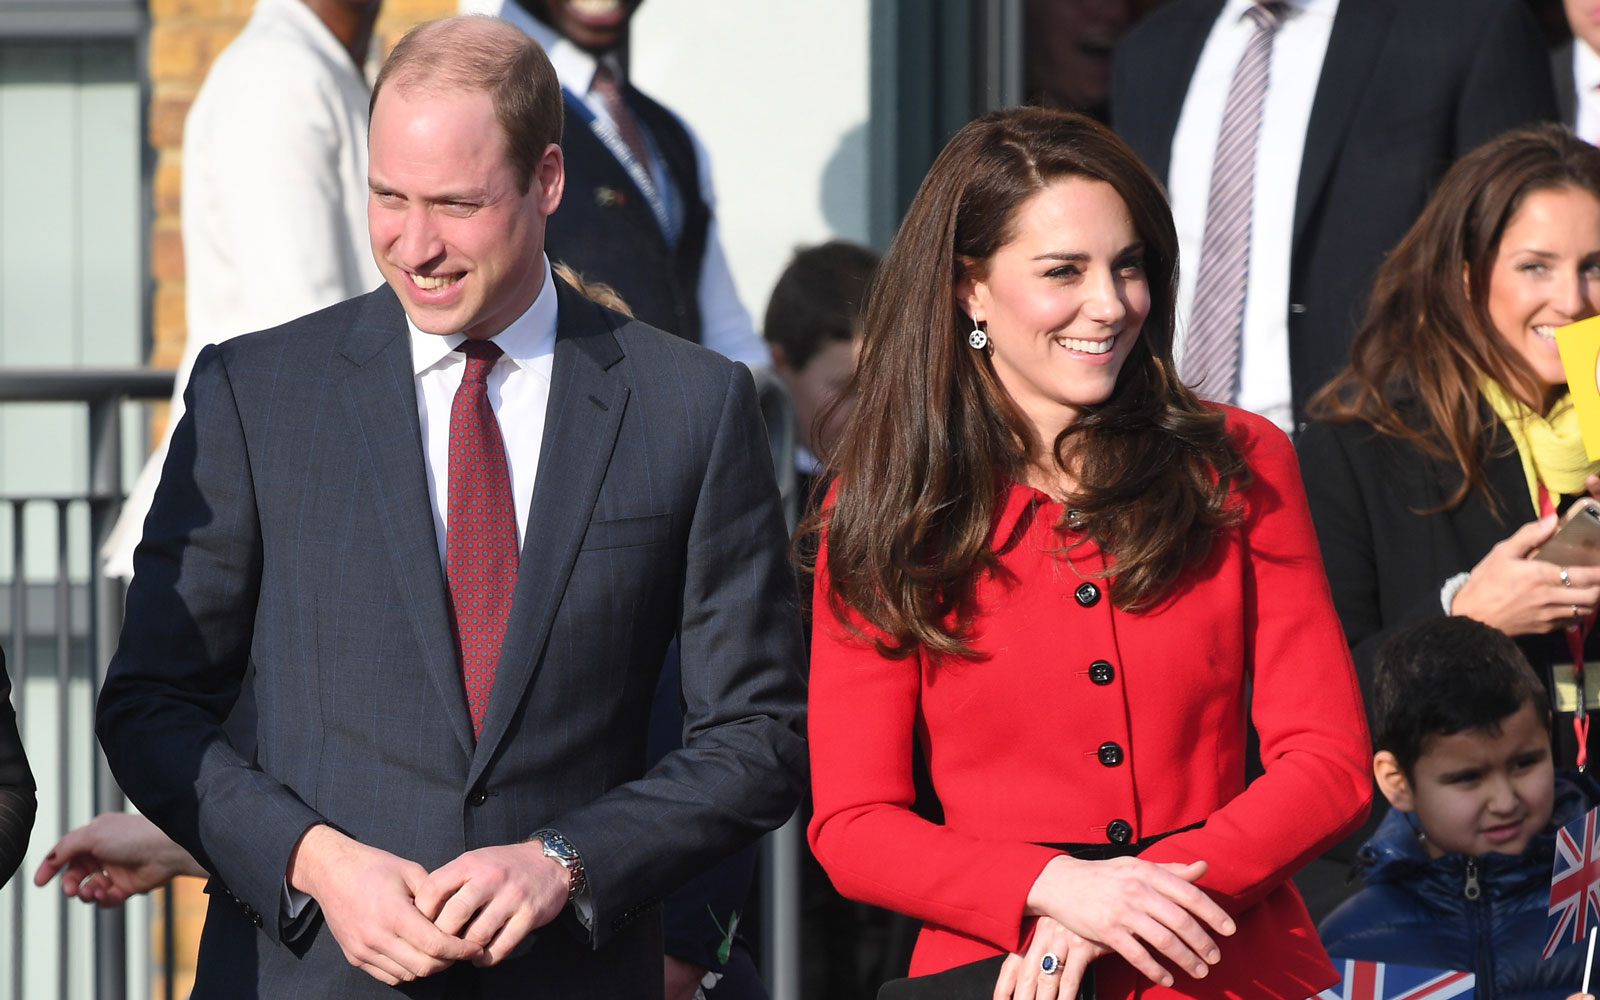 The Definitive Guide to Will and Kate's London